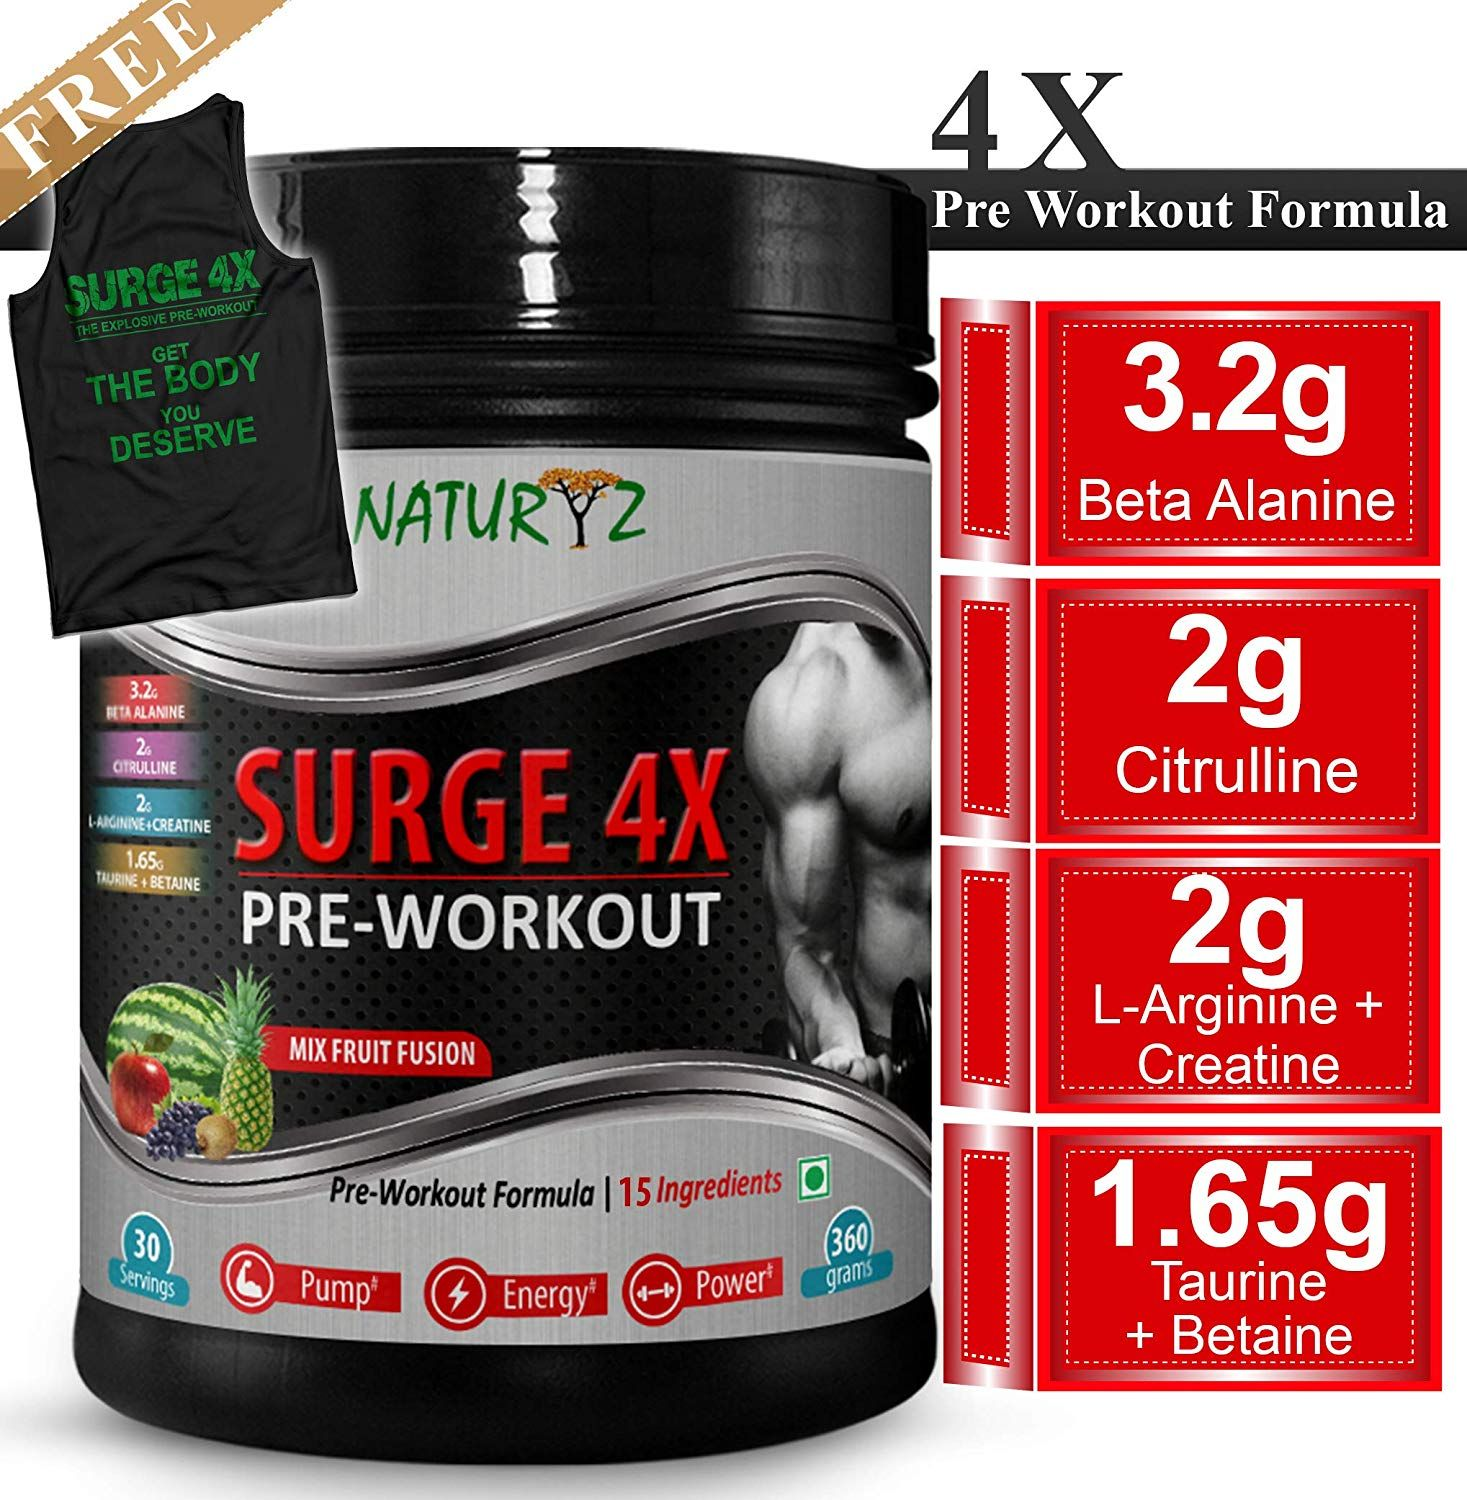 NATURYZ Surge 4x Advanced Pre-Workout Formula 360 gm